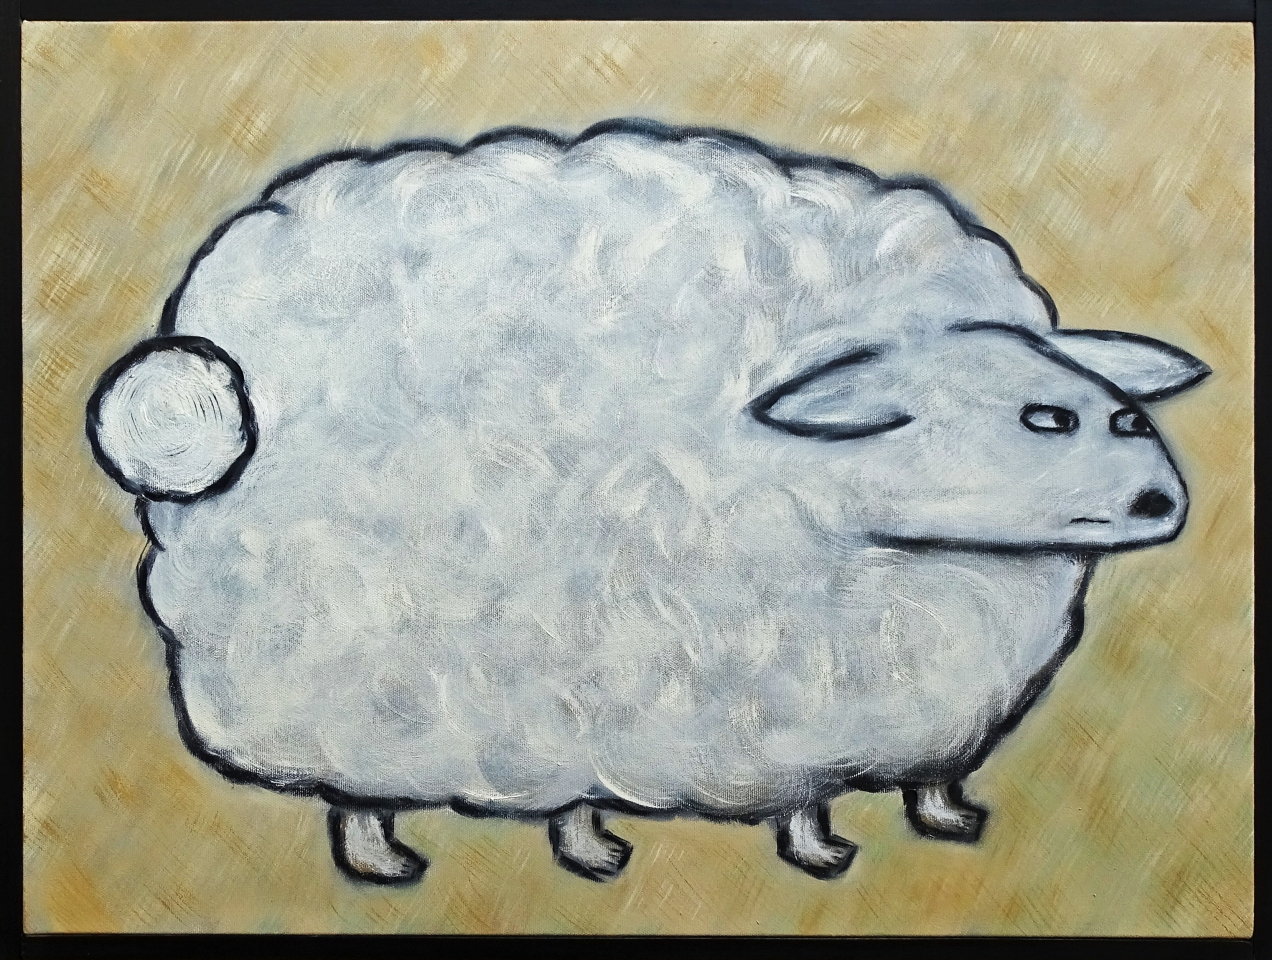 Sheep Just Standing There 18x24